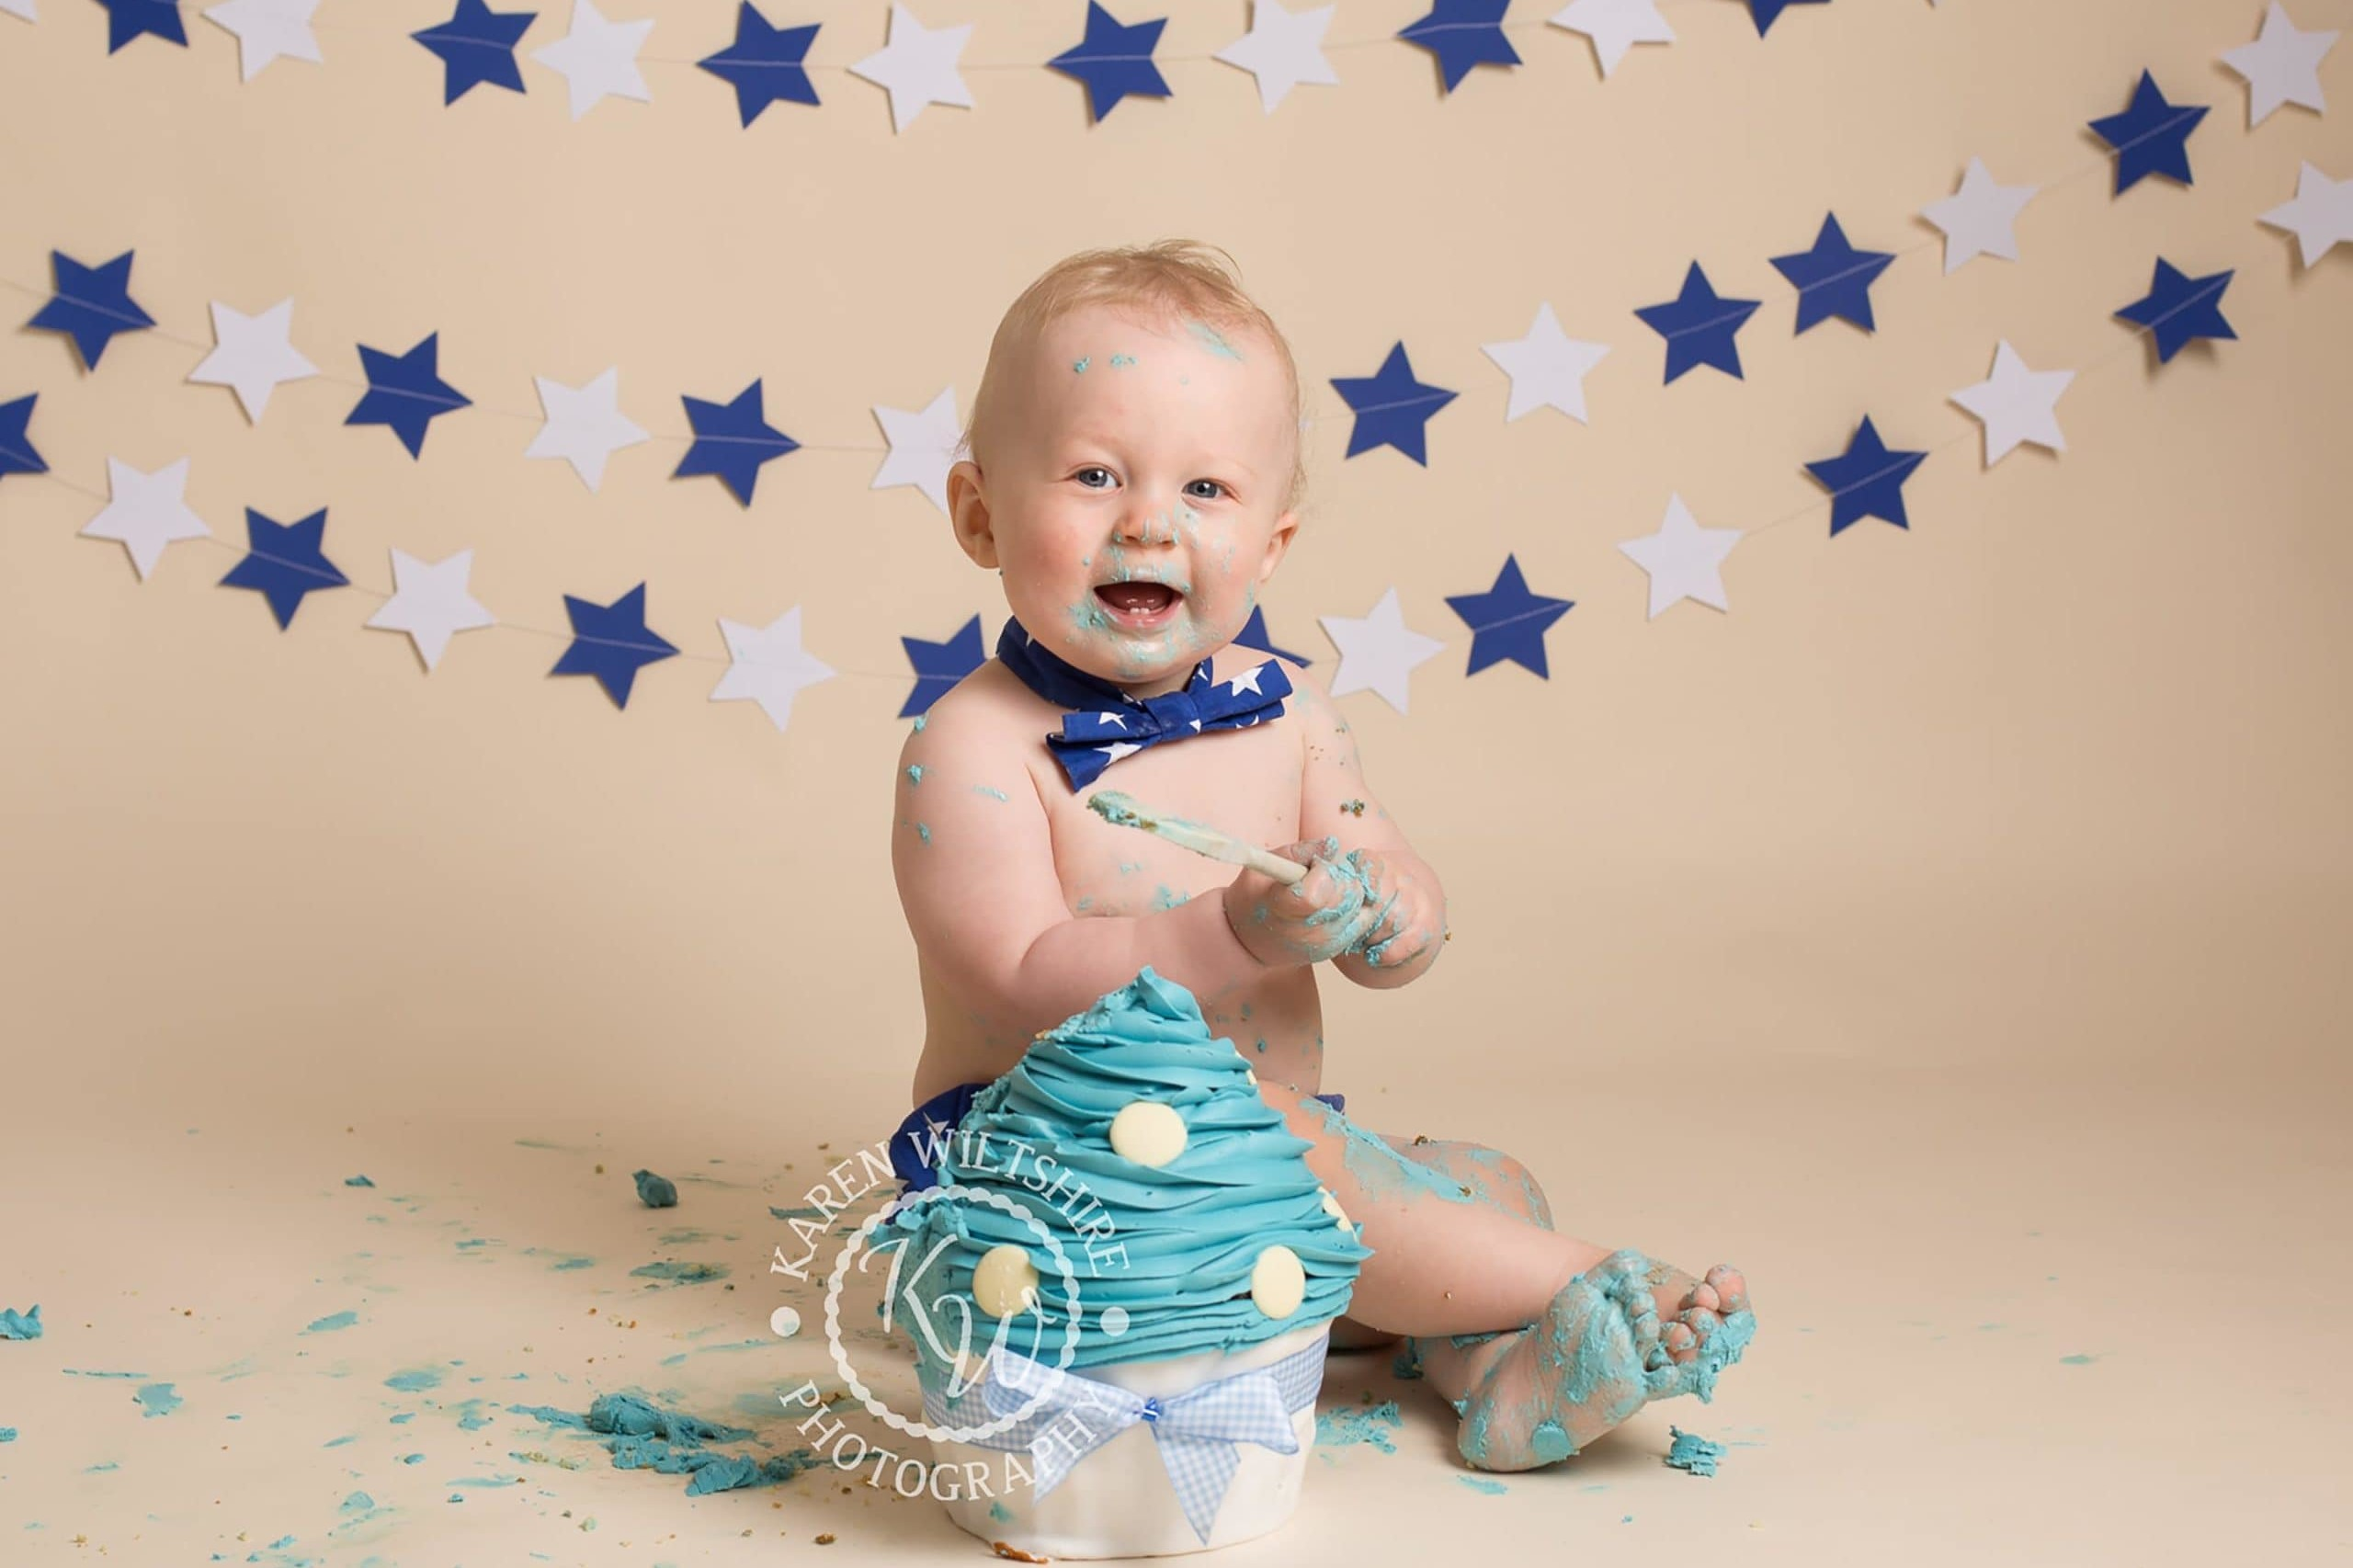 Baby boy enjoying a first birthday photoshoot with a large cupcake to smash